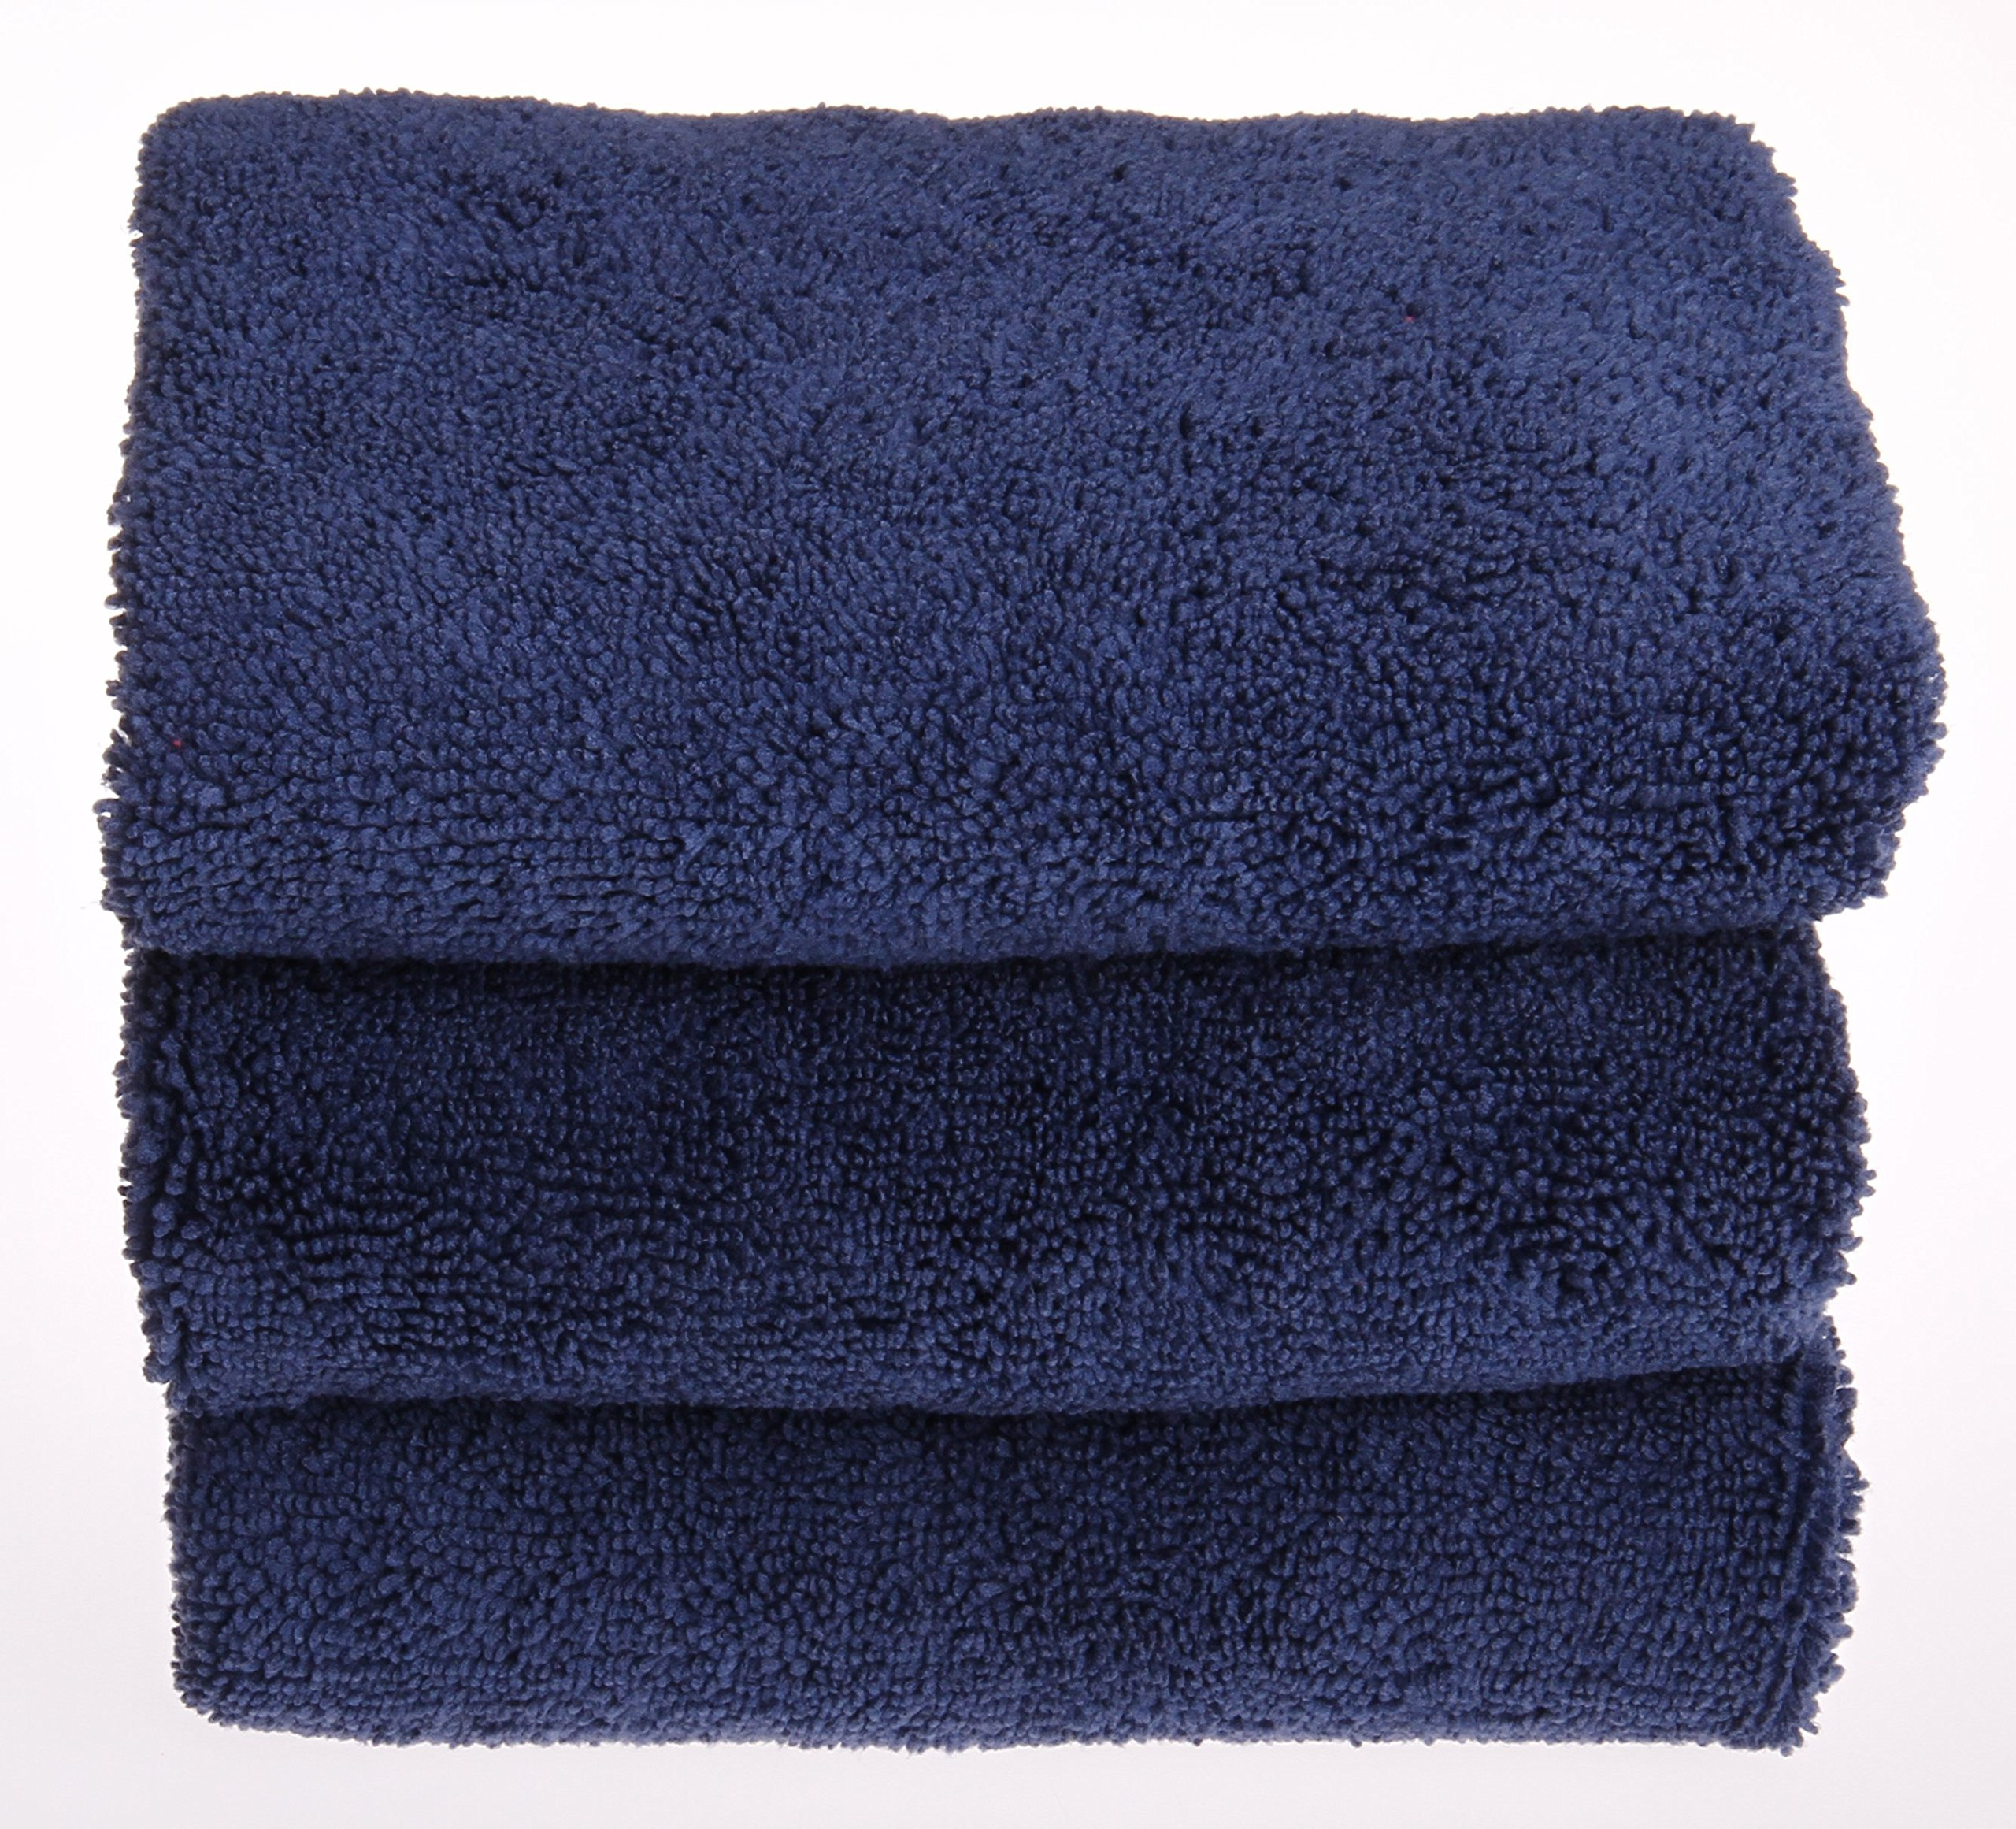 UTowels 16''x16'', Pack of 24, Premium Microfiber Towels for Auto and Home - Navy Blue